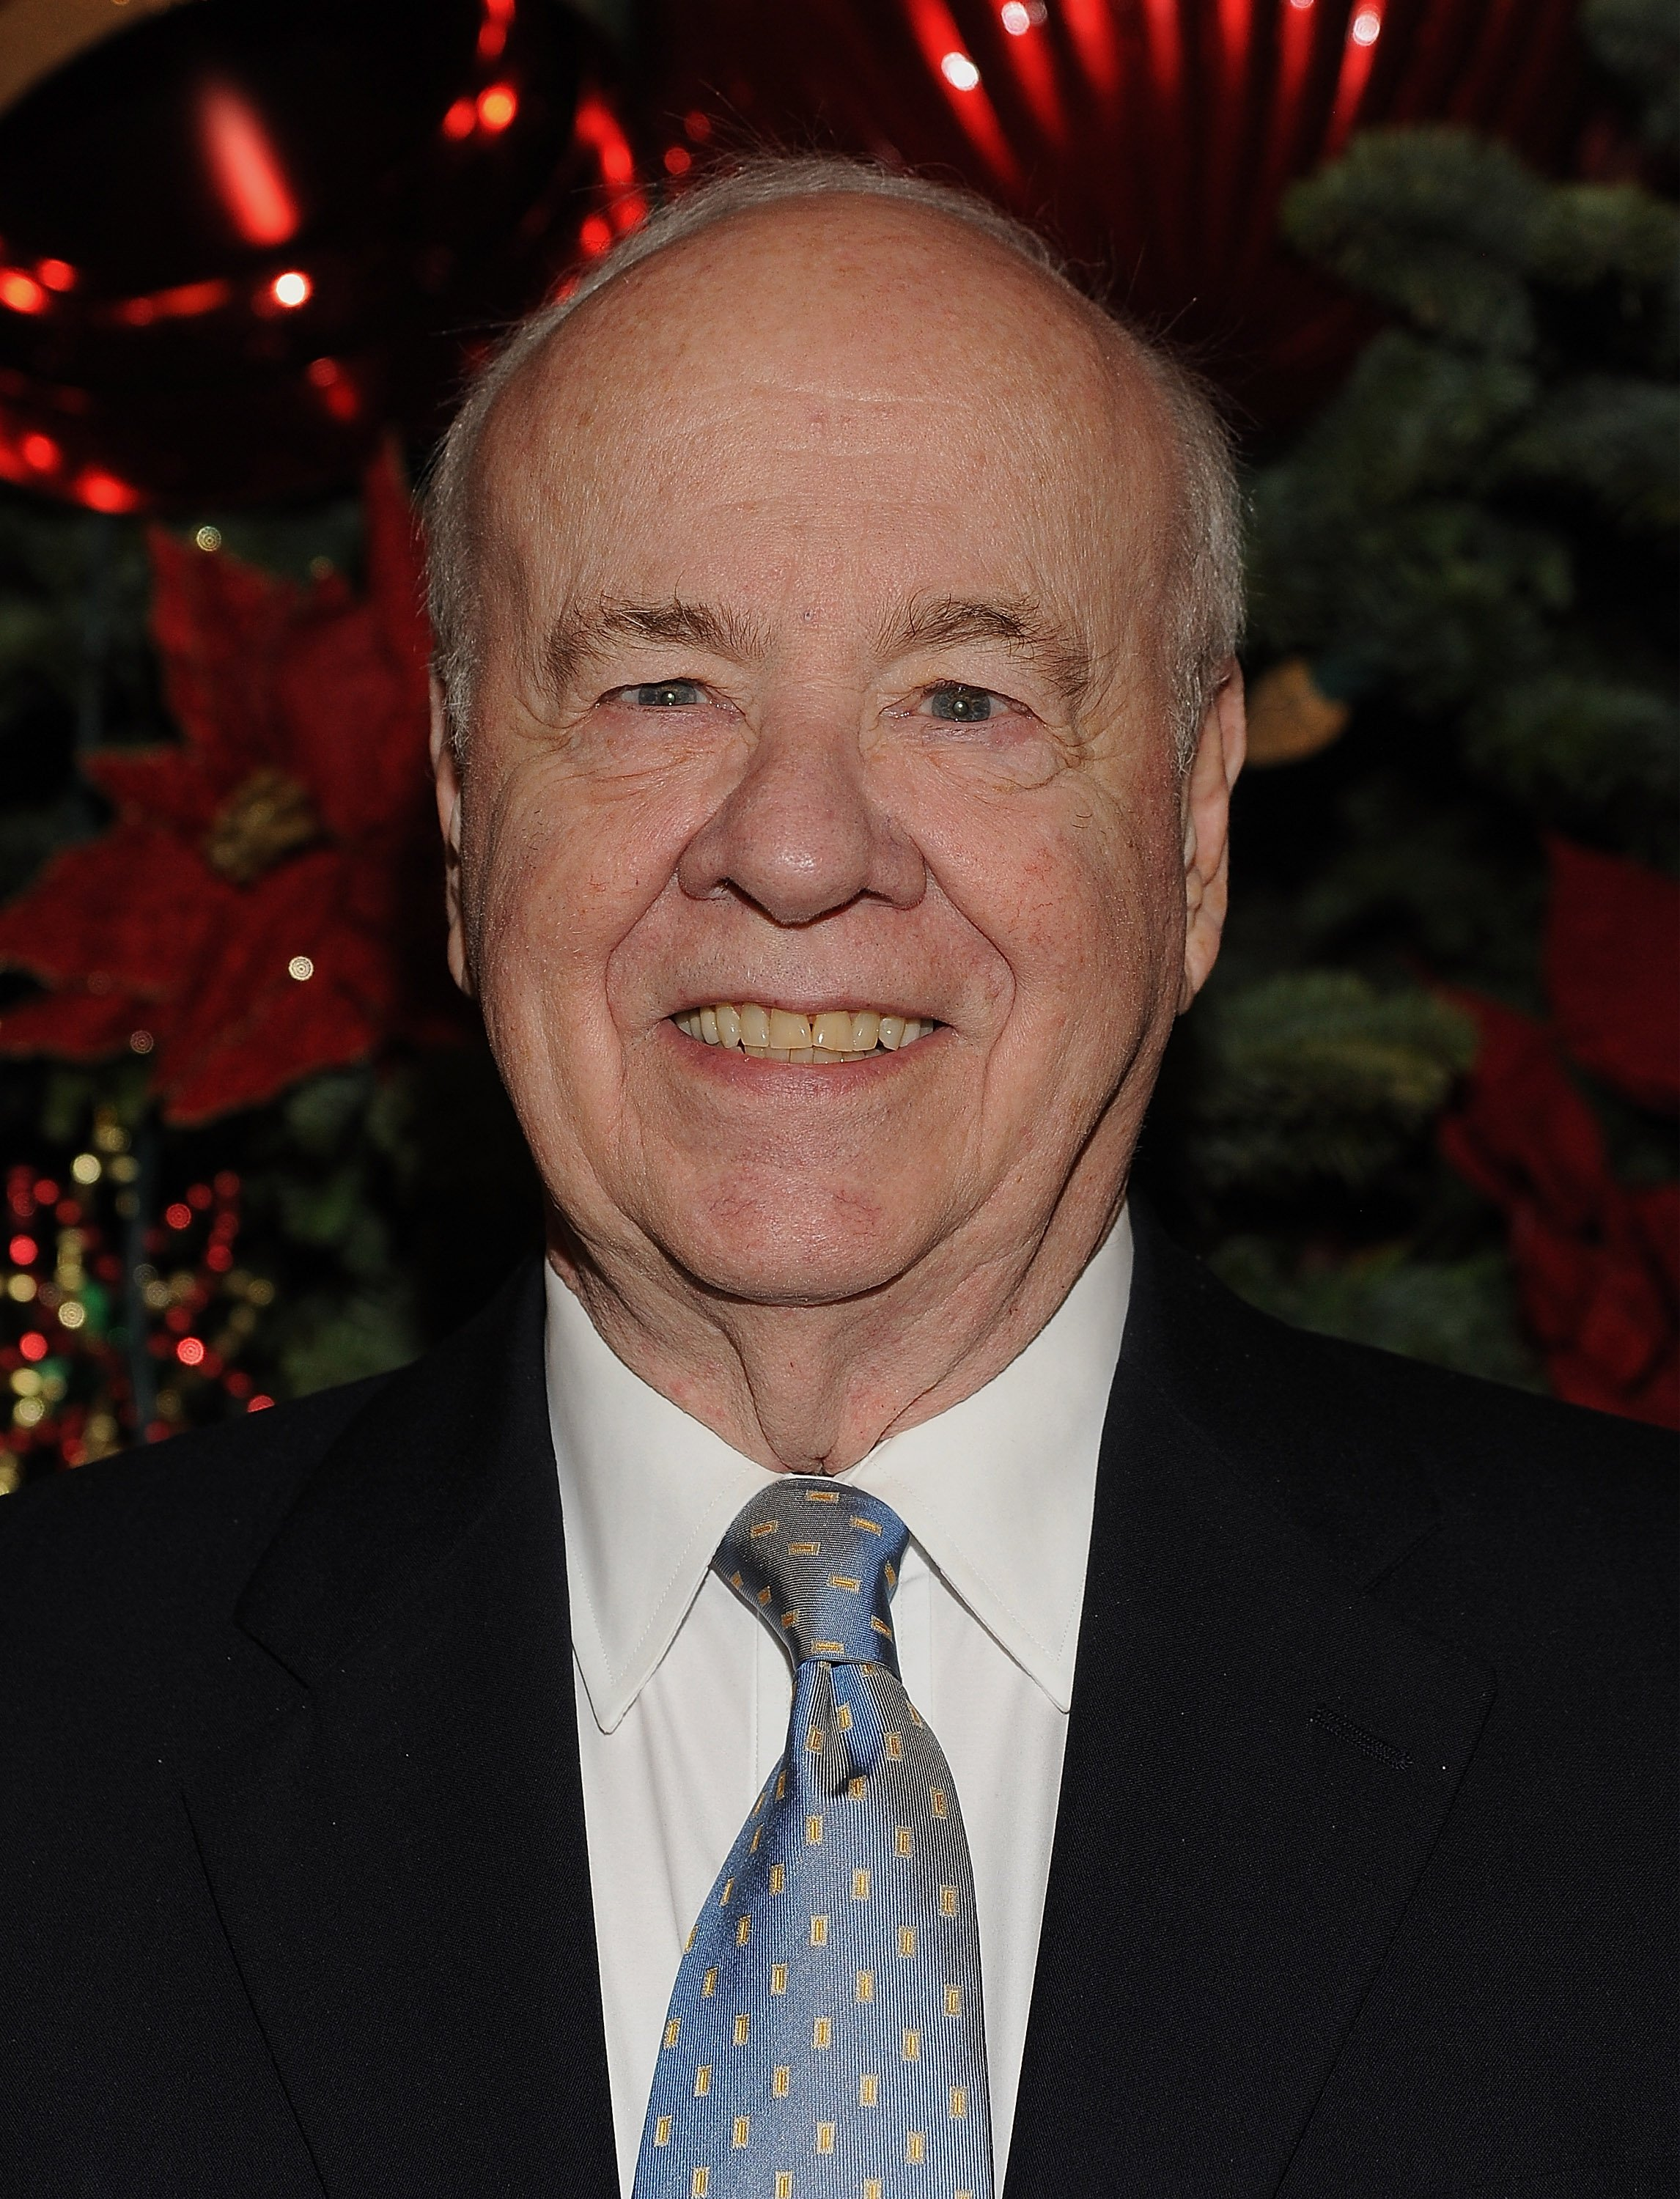 Tim Conway at Carroll and Company on December 11, 2013 | Source: Getty Images